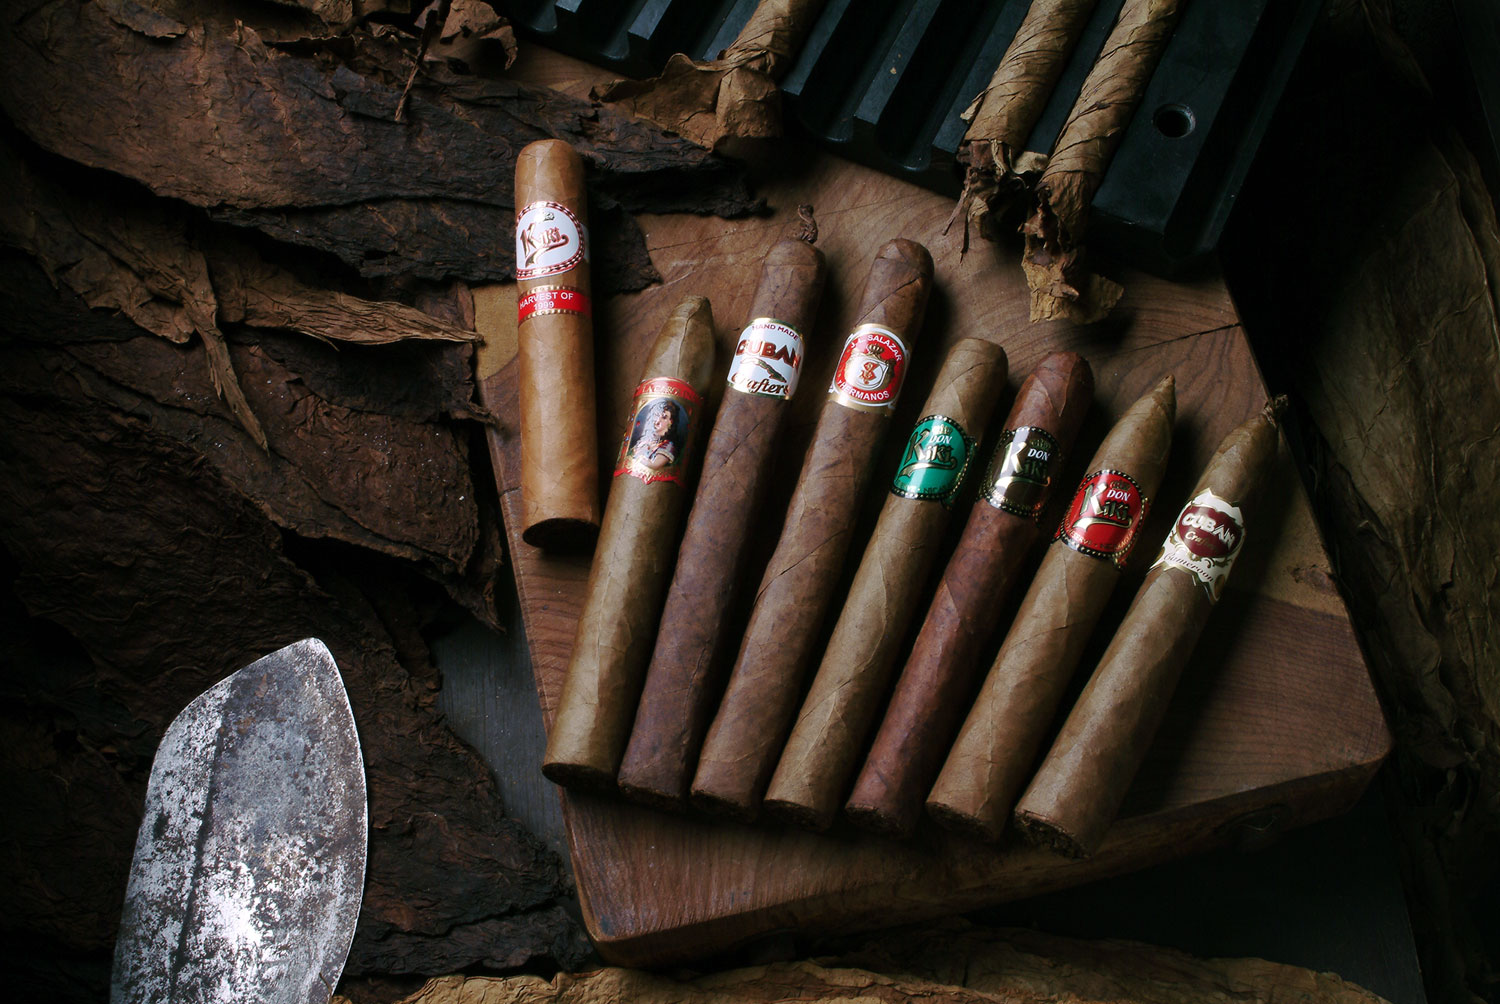 The Best Cigars in The World | Top 5